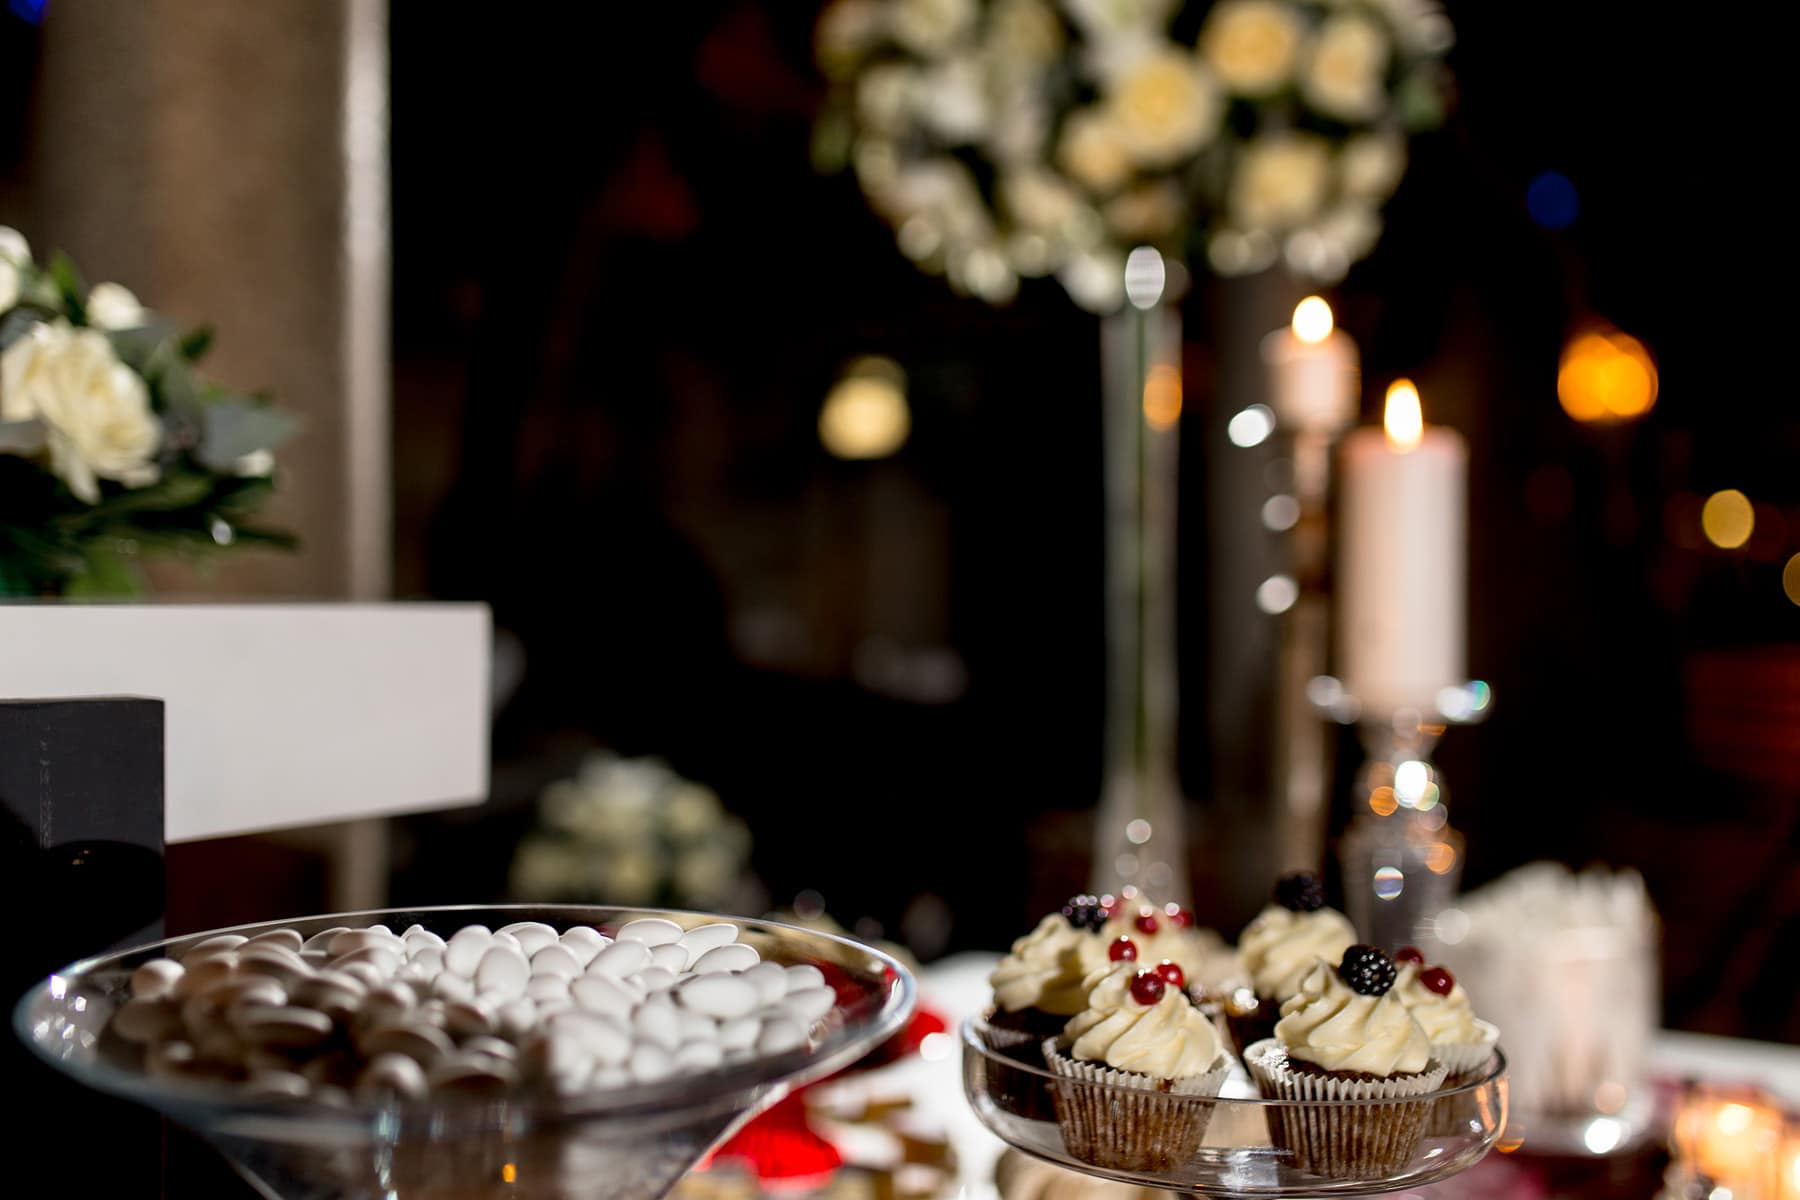 Wedding cupcakes with blue berries